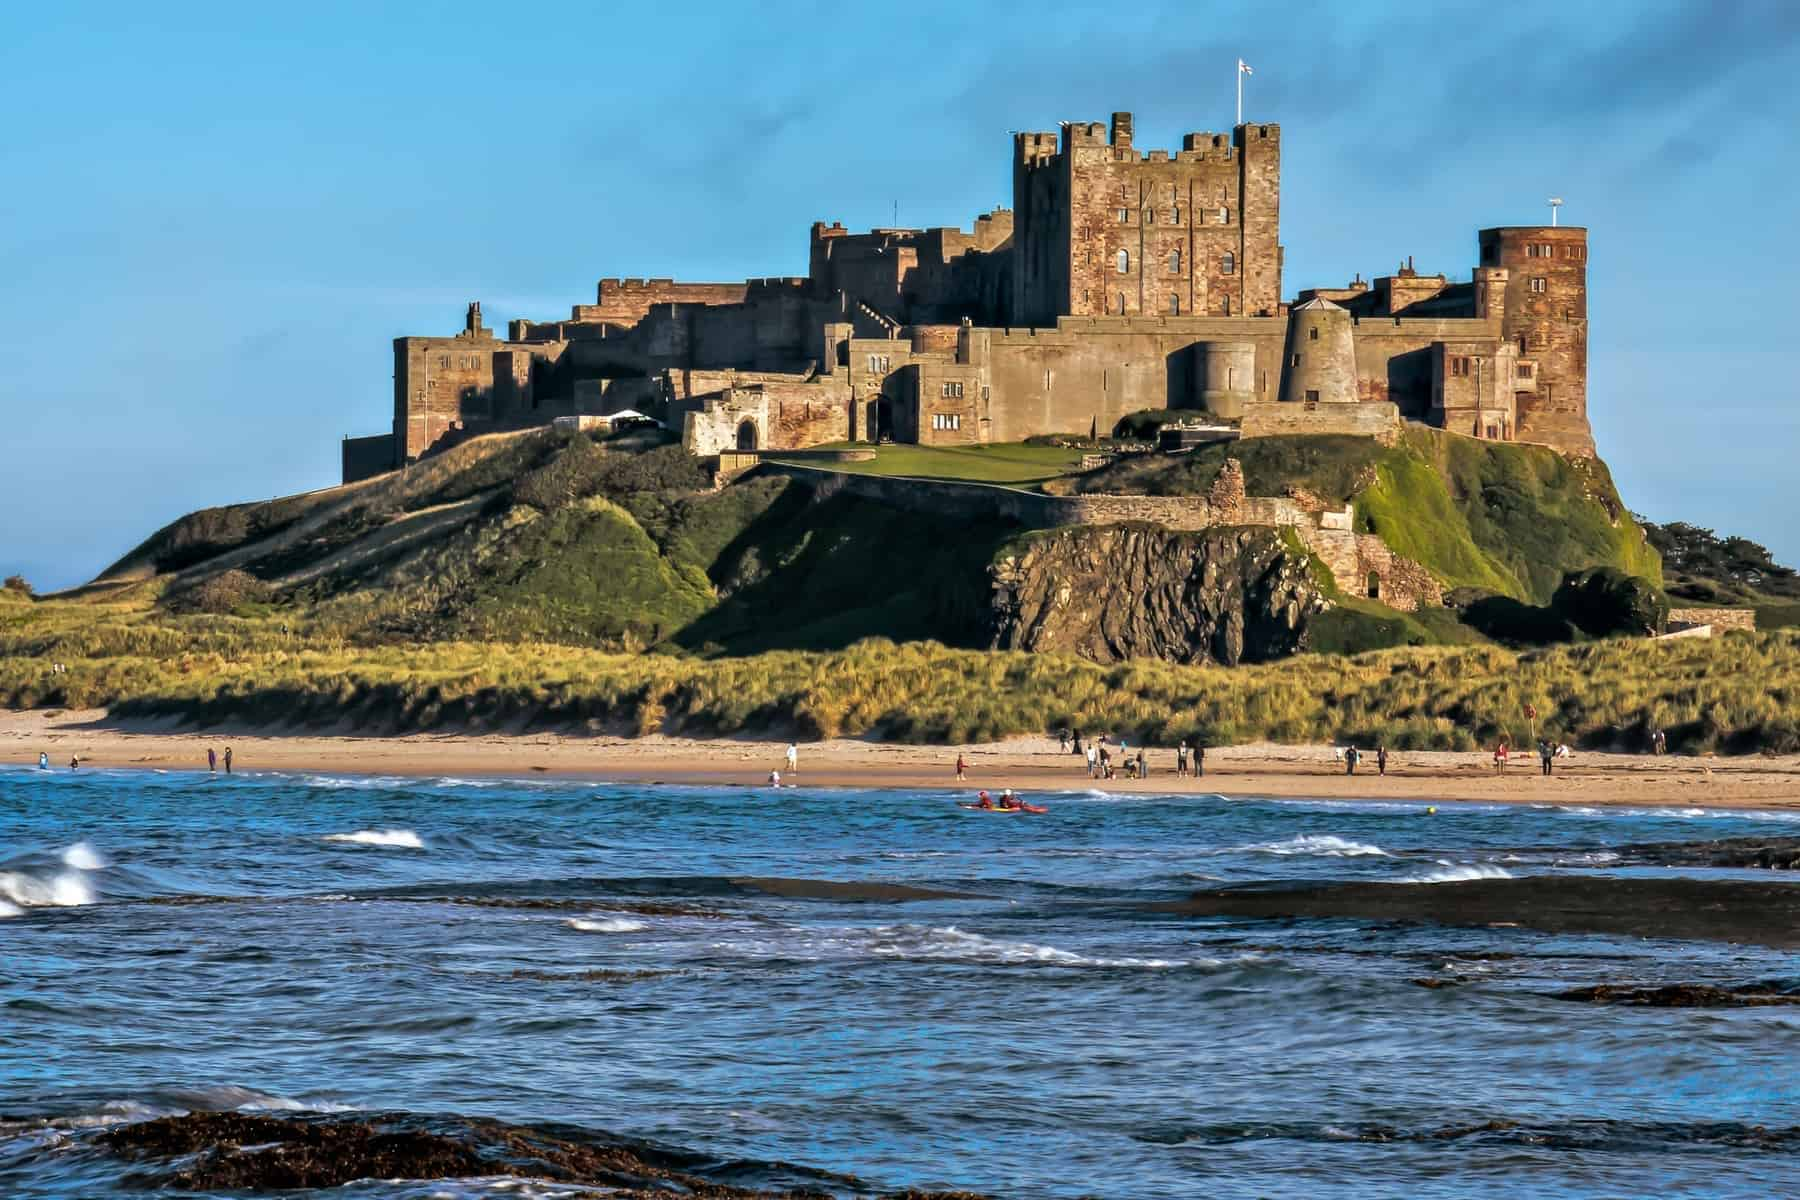 BAMBURGH, NORTHUMBERLAND View of Bamburgh Castle in Northumberland on